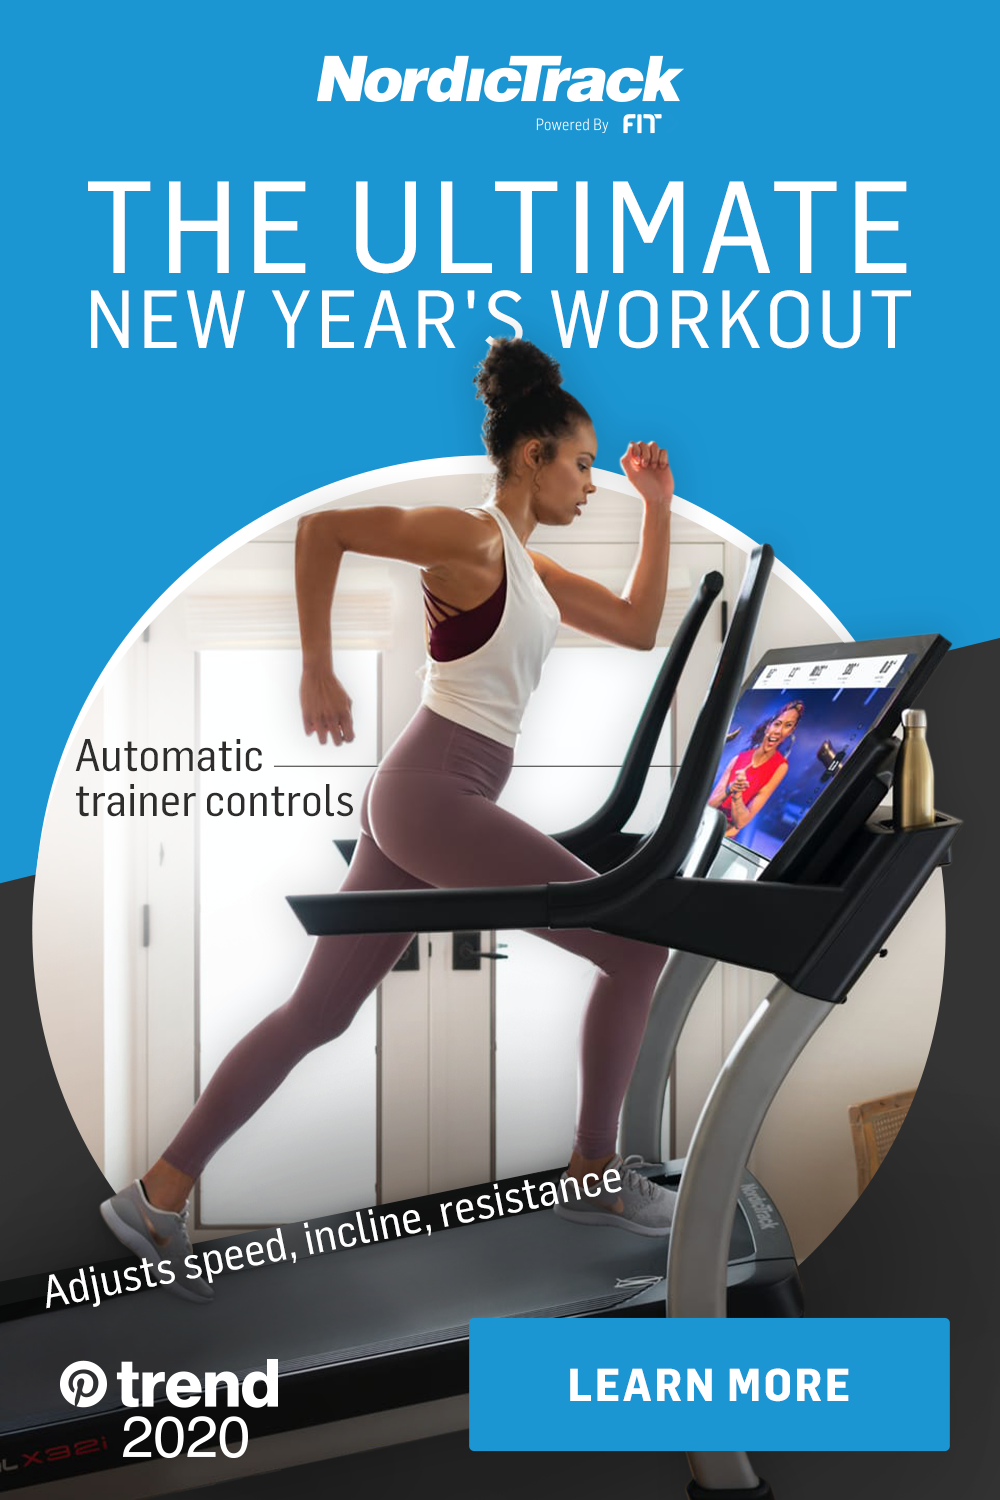 The Ultimate New Year S Workout By Nordictrack In 2020 Workout Nordictrack Biking Workout